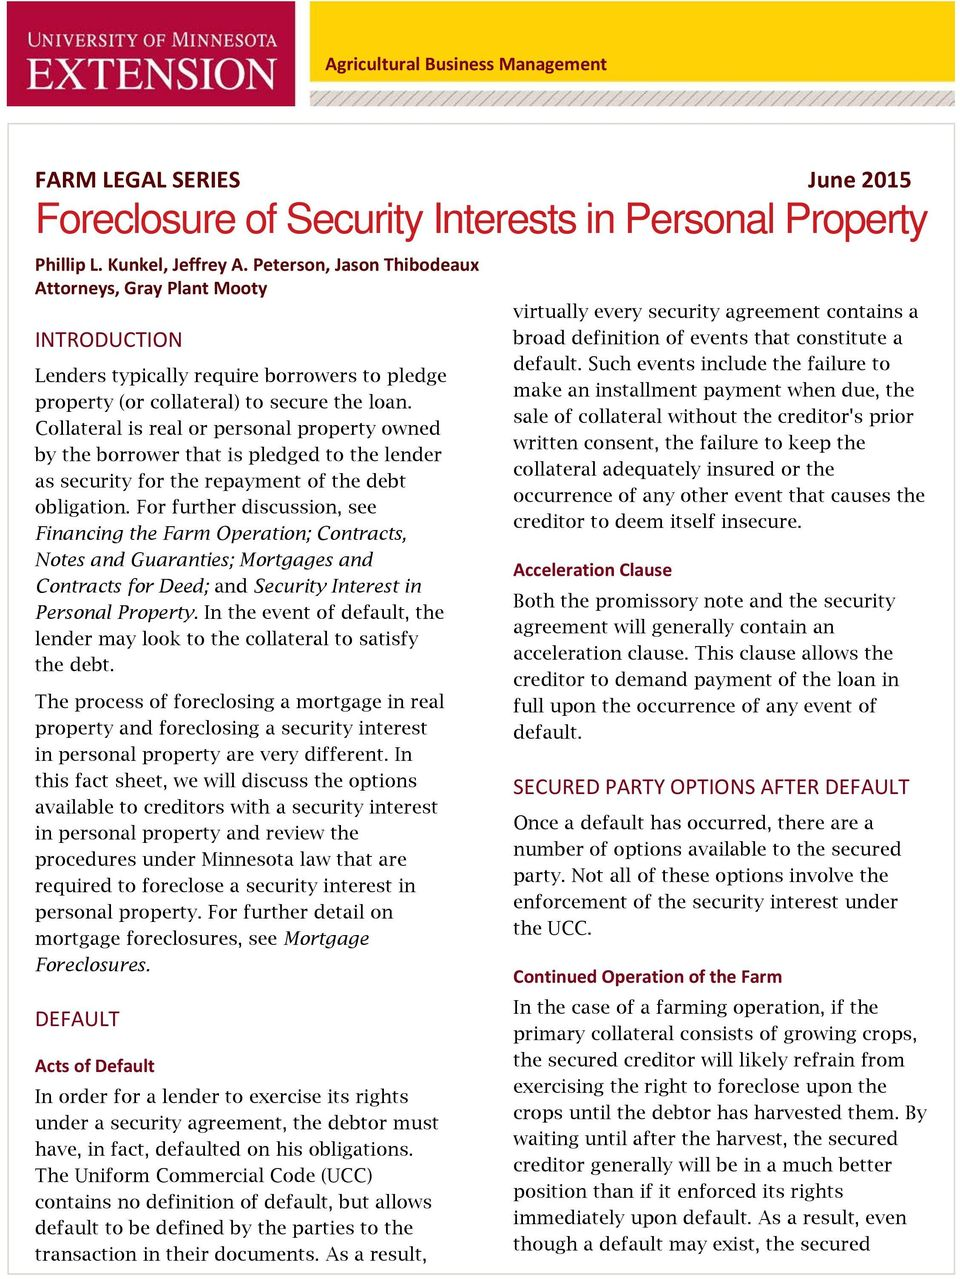 Collateral is real or personal property owned by the borrower that is pledged to the lender as security for the repayment of the debt obligation.